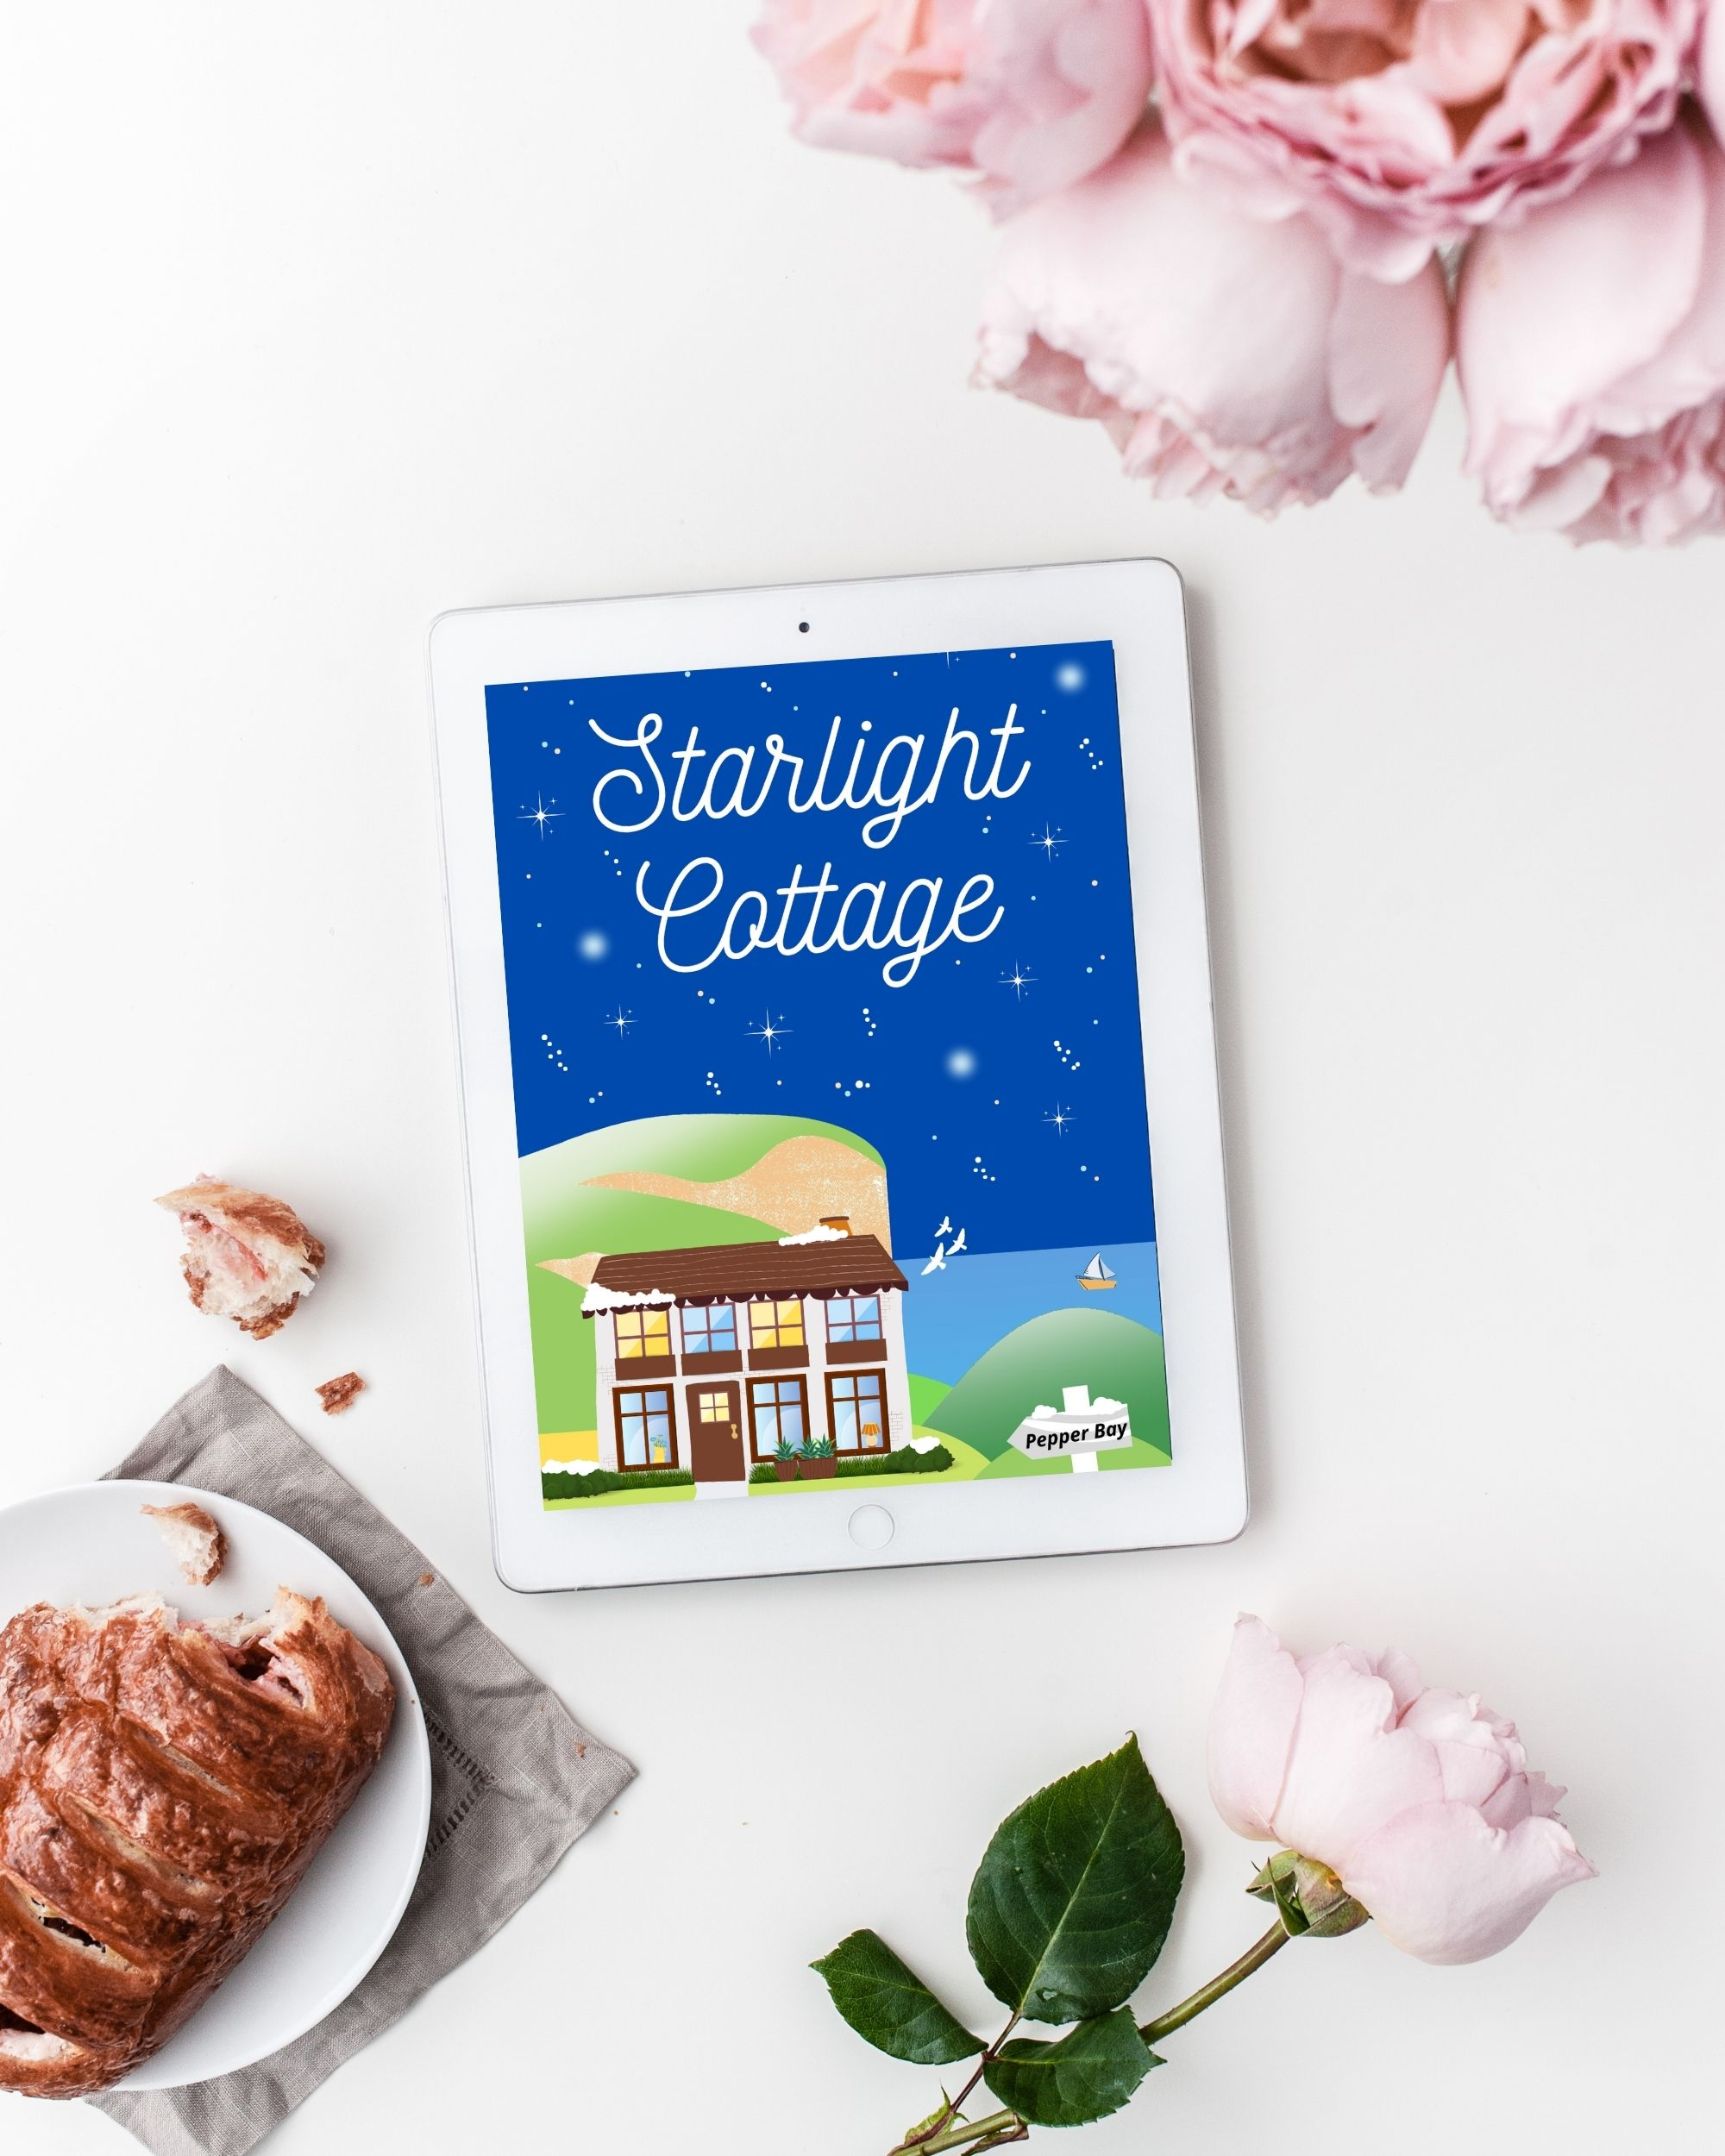 Starlight Cottage by KT Dady Review - Wickedly Romance